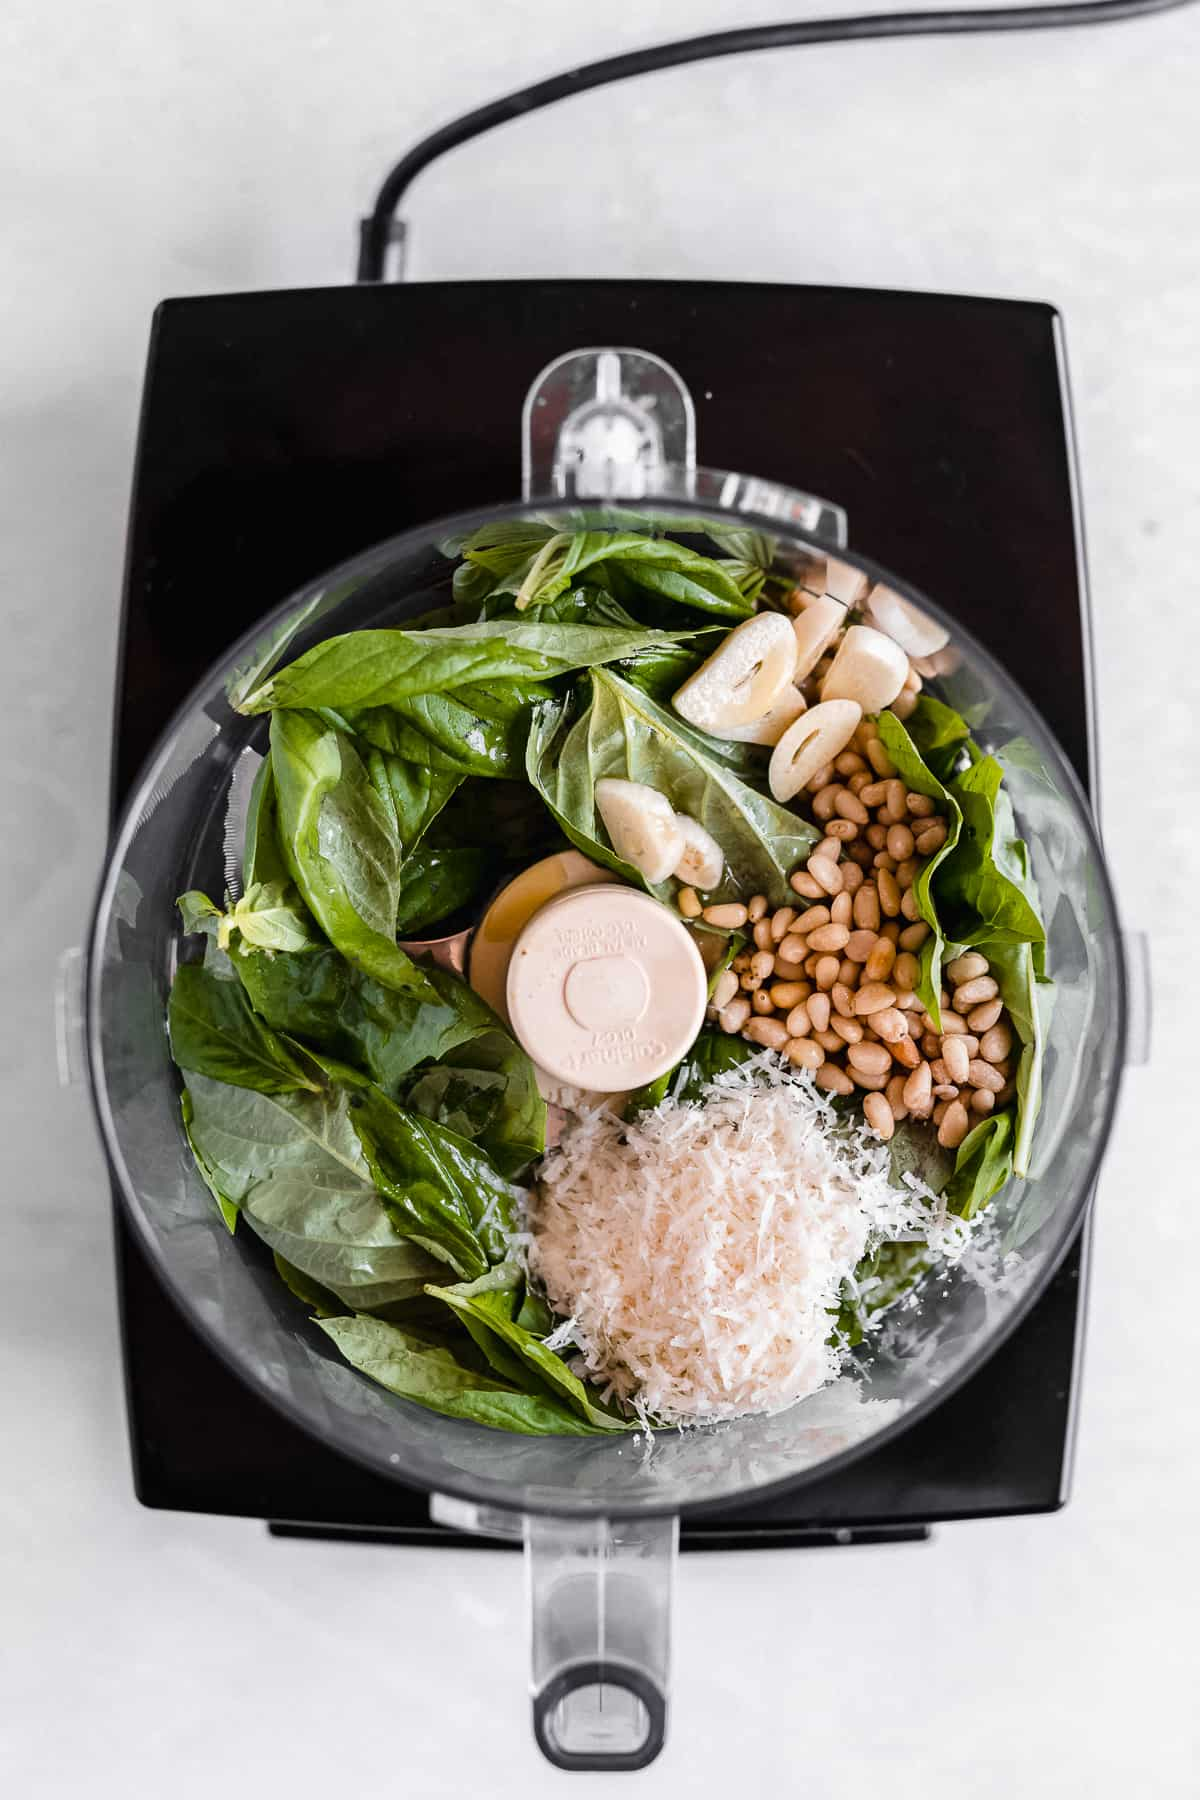 Overhead photo of the ingredients used in the basil pesto sauce layered in a food processor ready to be mixed.  Food processor is sitting on a white marble slab.